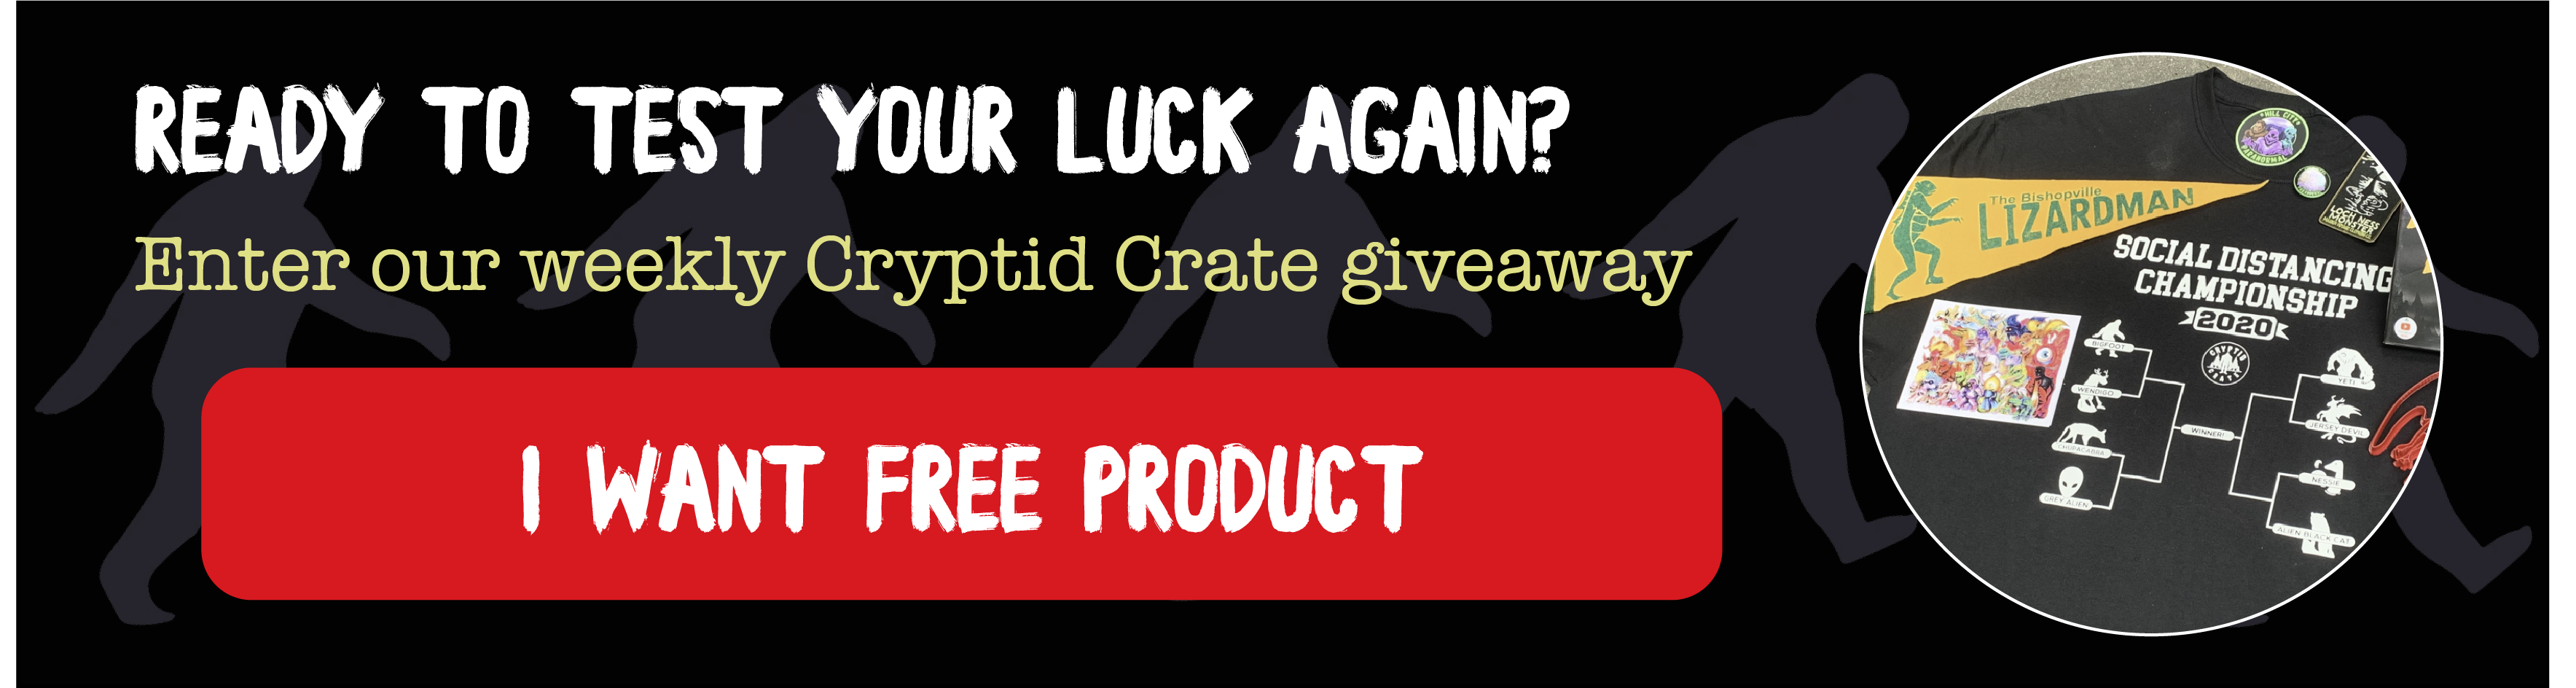 Enter the Cryptid Crate giveaway